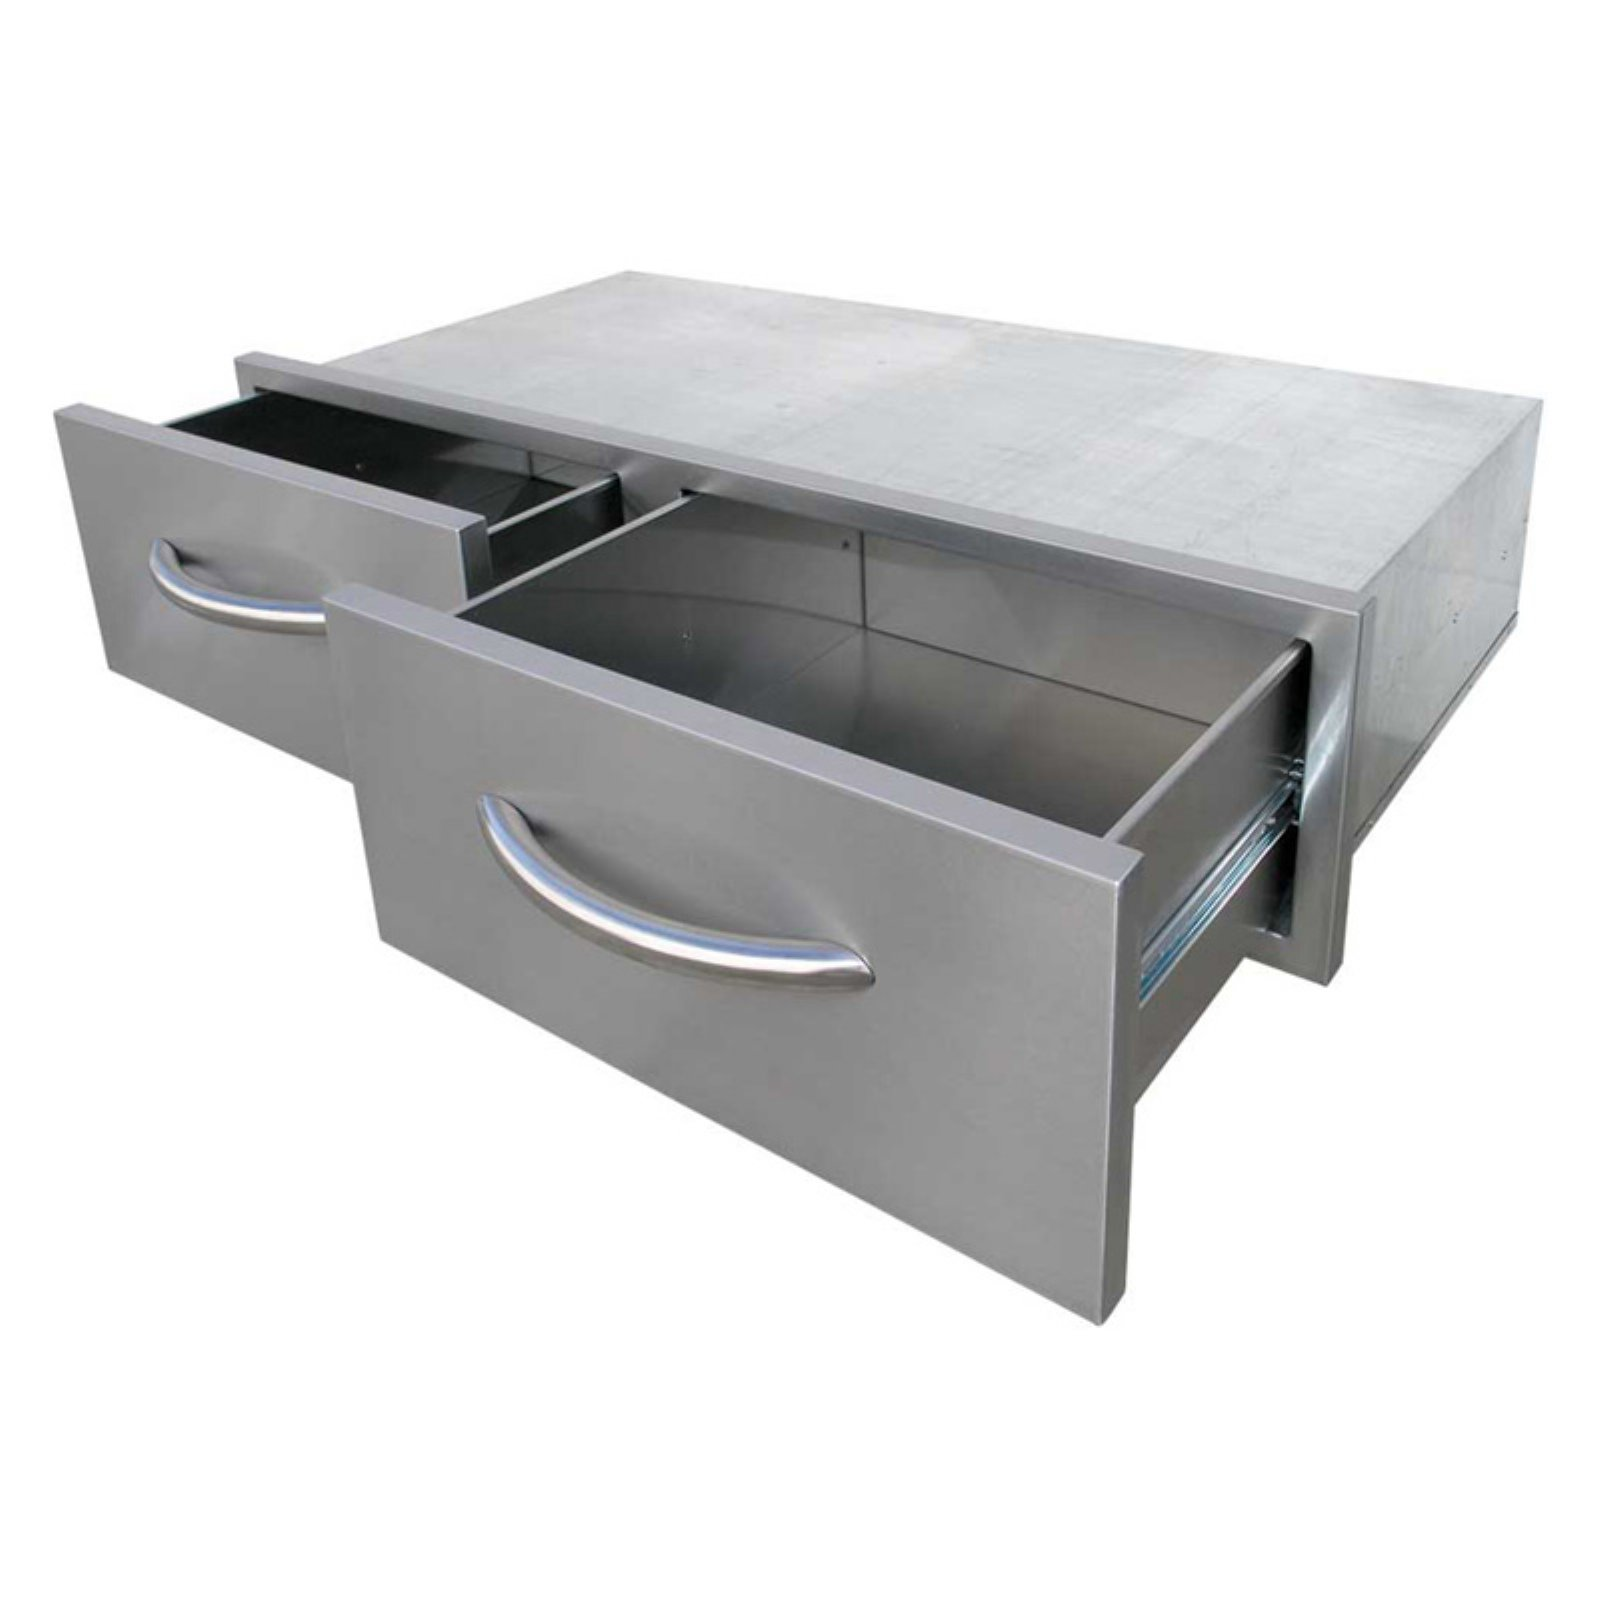 Cal Flame 2 Drawer Horizontal Cal Flame Bins Outdoor Kitchen Cabinets